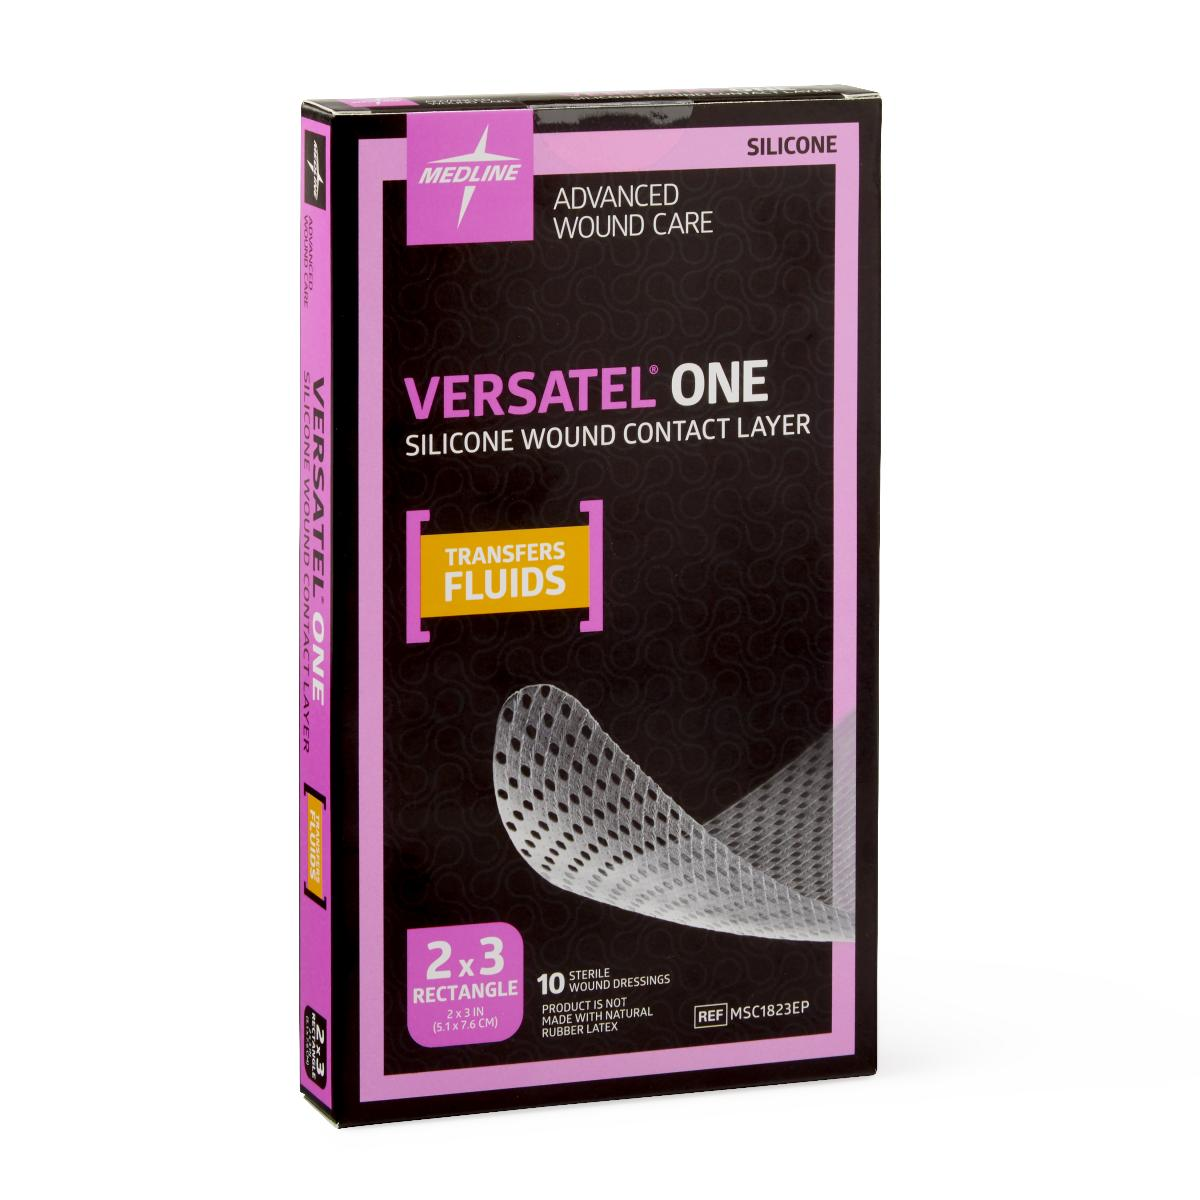 "Versatel One 2"" x 3"" Dressing - Box of 10"